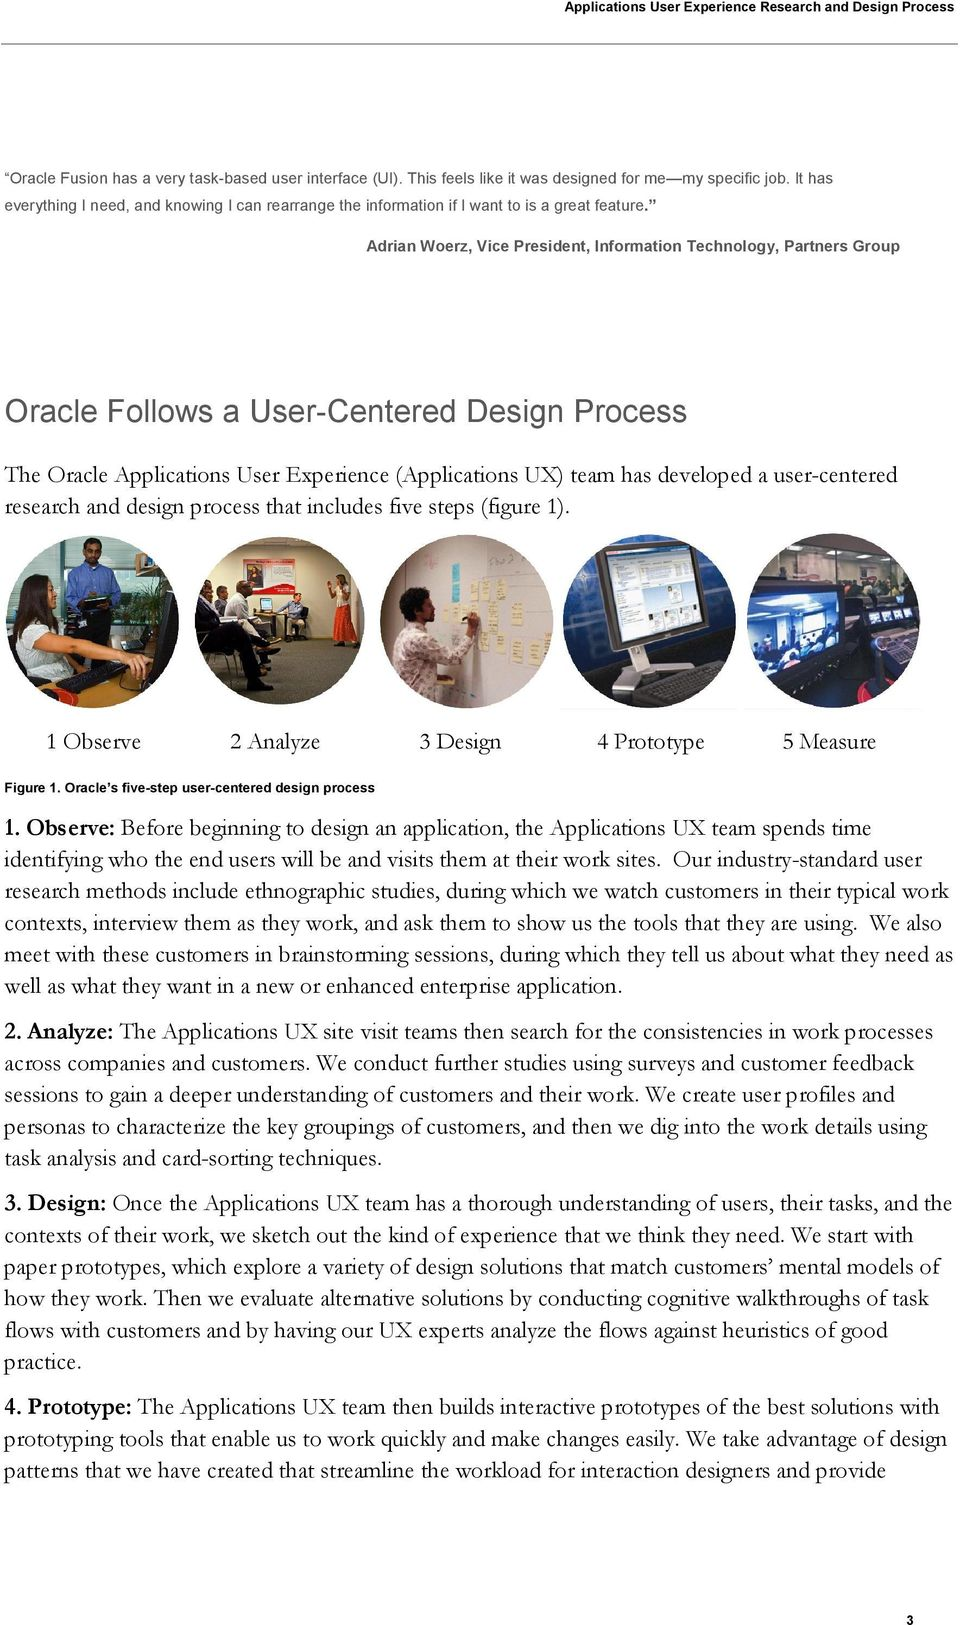 Adrian Woerz, Vice President, Information Technology, Partners Group Oracle Follows a User-Centered Design Process The Oracle Applications User Experience (Applications UX) team has developed a